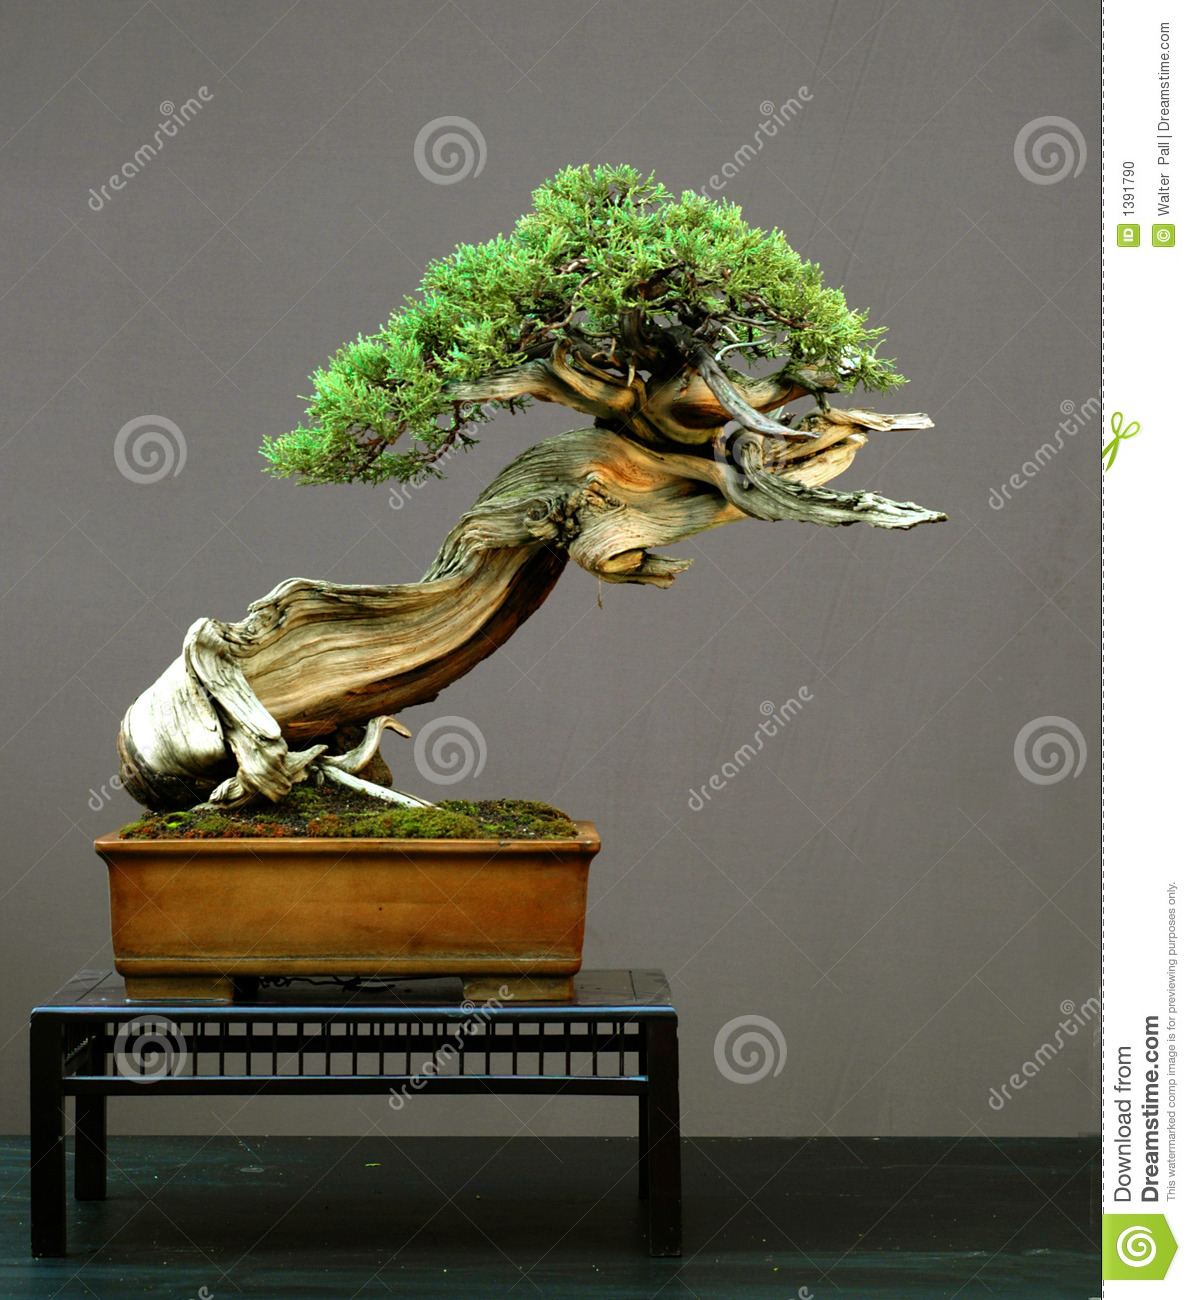 Juniper bonsai, American